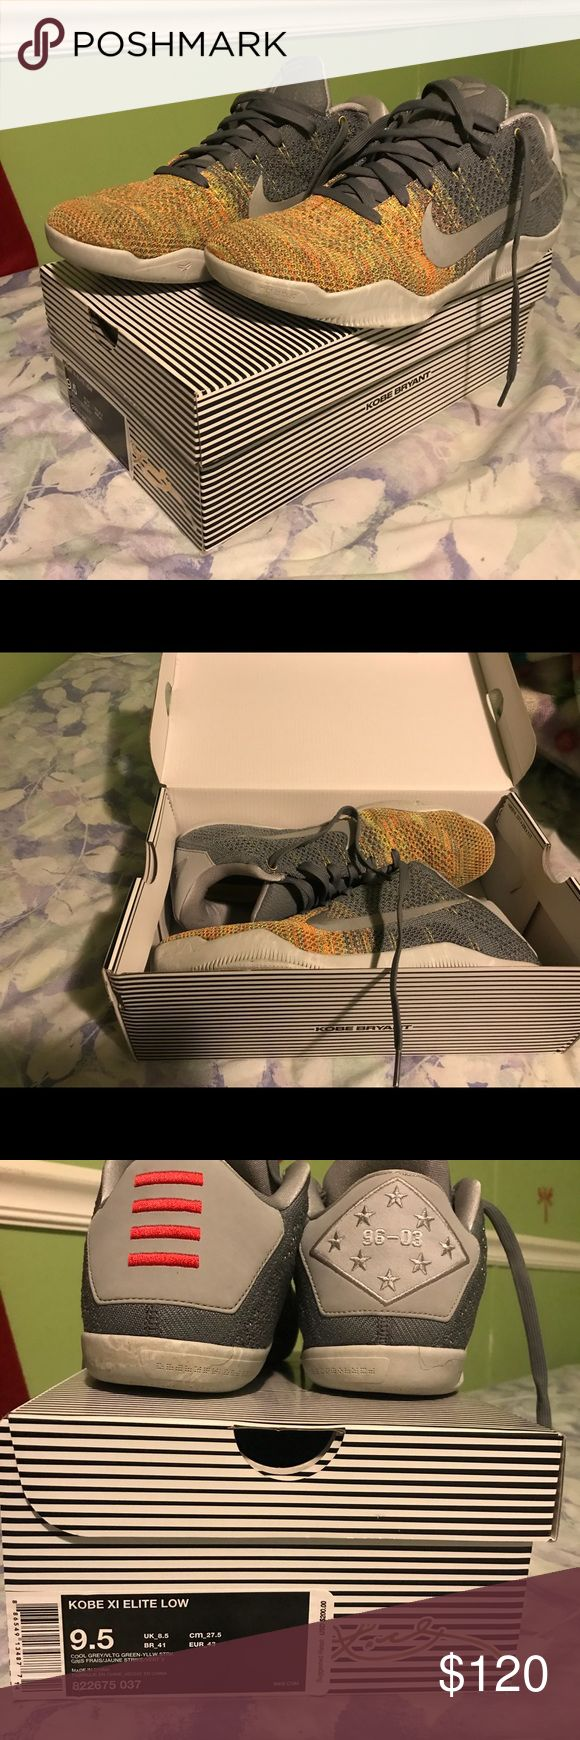 Kobe 11 elite low size 9.5 Asking 120 but will negotiate, great shoes in excellent condition, only worn like twice. Nike Shoes Athletic Shoes